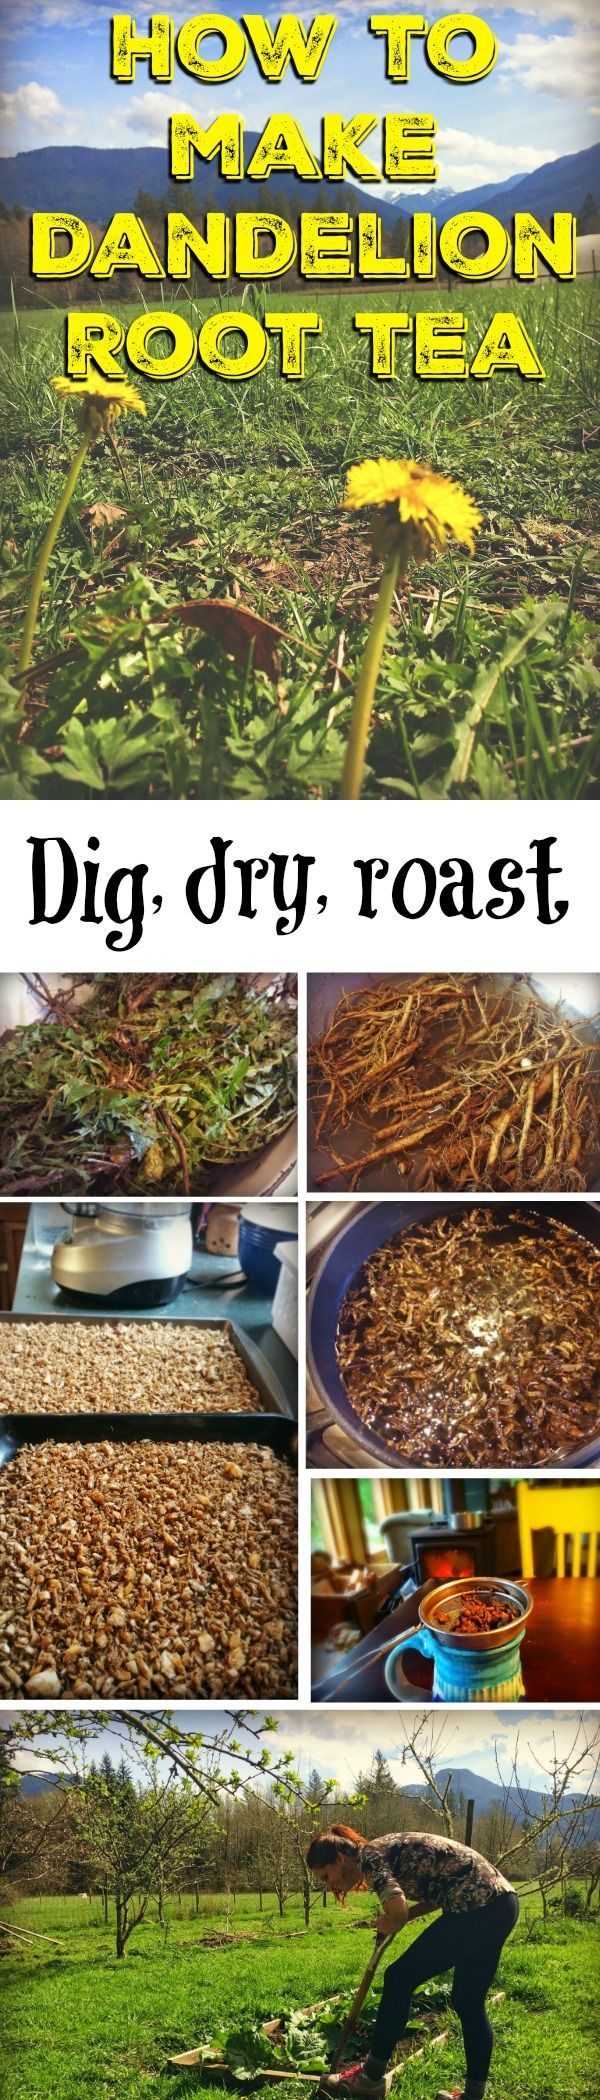 How to make dandelion root tea, and why everyone should drink it -- There are many reasons to drink dandelion root tea, and it's fun and easy to dig your own roots, dry them, and make them into a delicious drink – even use it as a coffee substitute! You can use the whole plant: roots for tea, greens for salads and soups, flowers in wine and s...